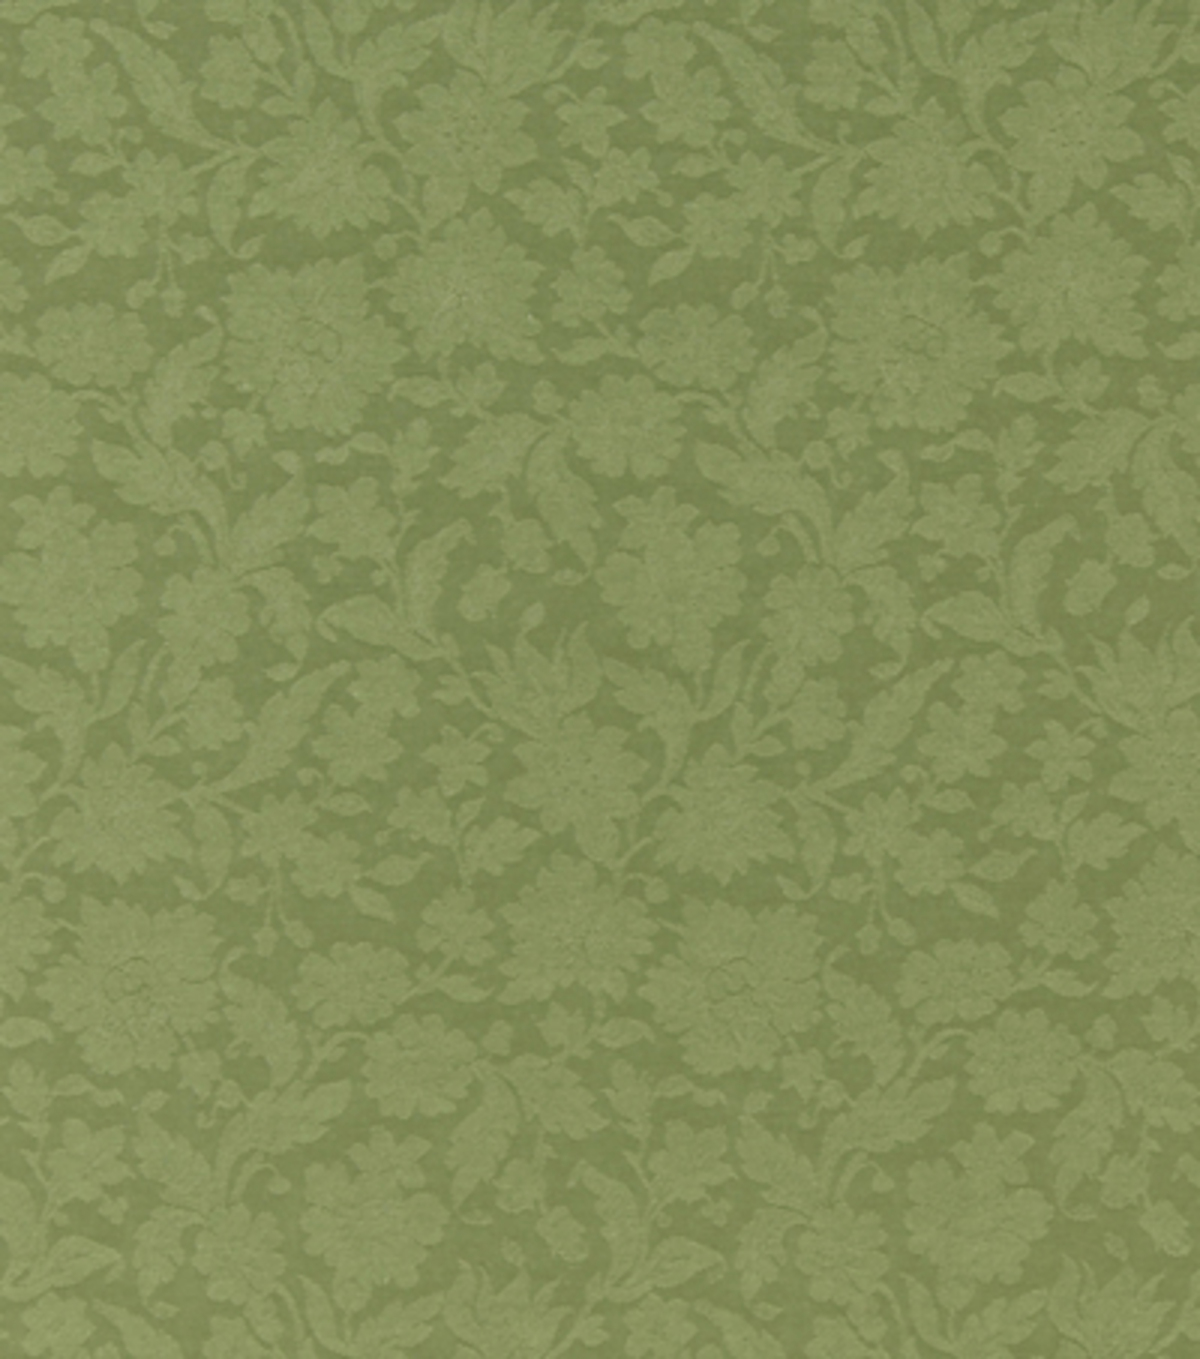 Home Decor 8\u0022x8\u0022 Fabric Swatch-Covington Felicity 224 Silver Sage